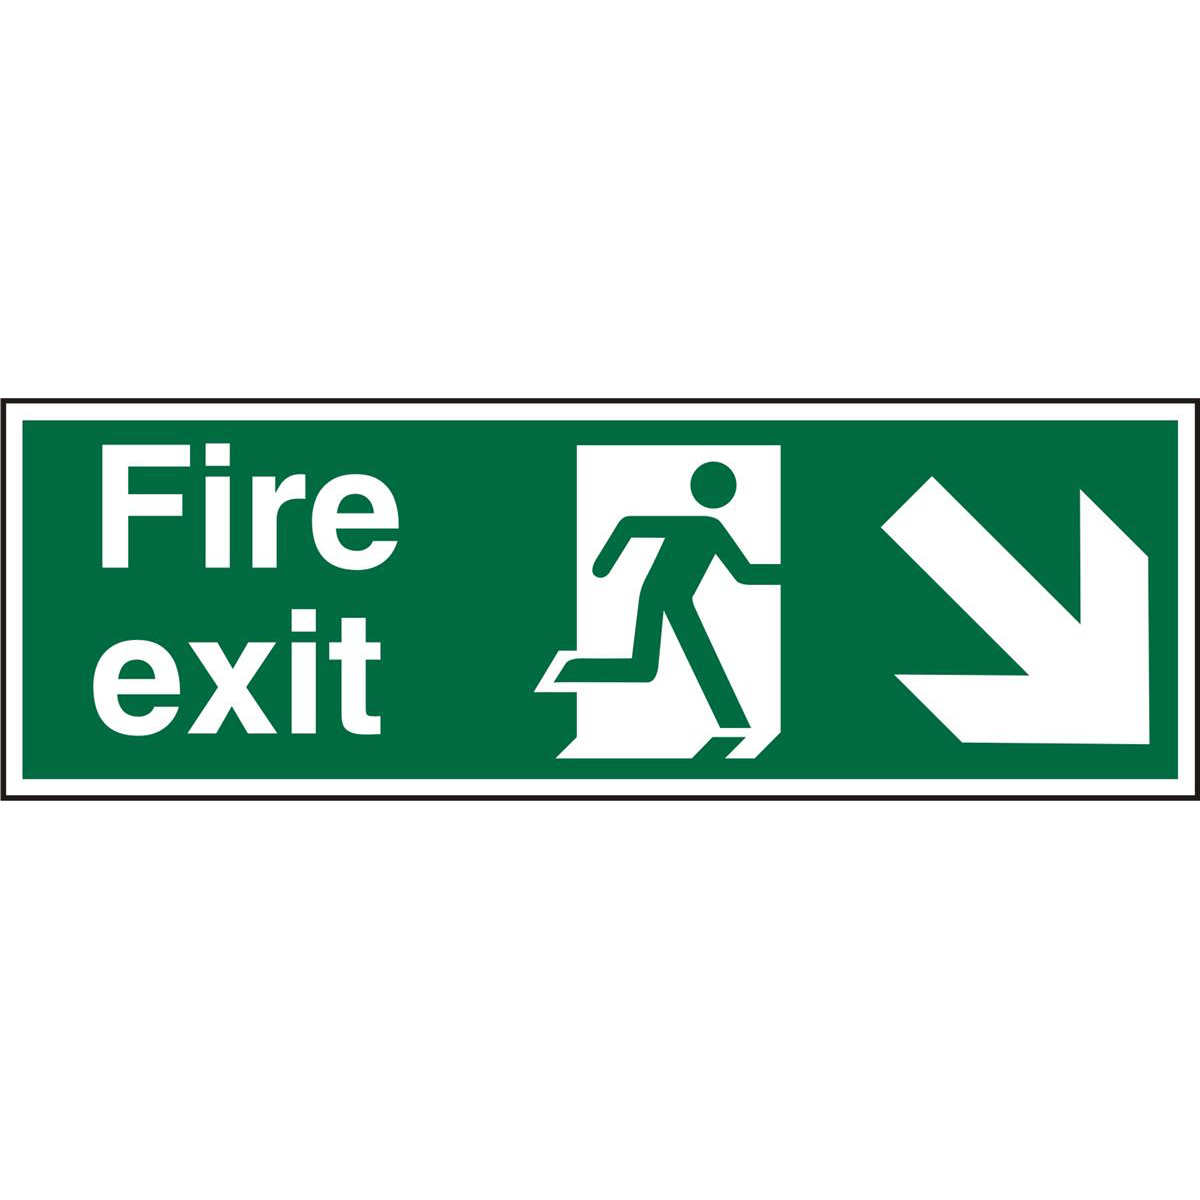 Prestige Sign 2mm DS 300x100 FireExit Man Running Right&Arrow Ref ACSP123300x100 *Up to 10 Day Leadtime*